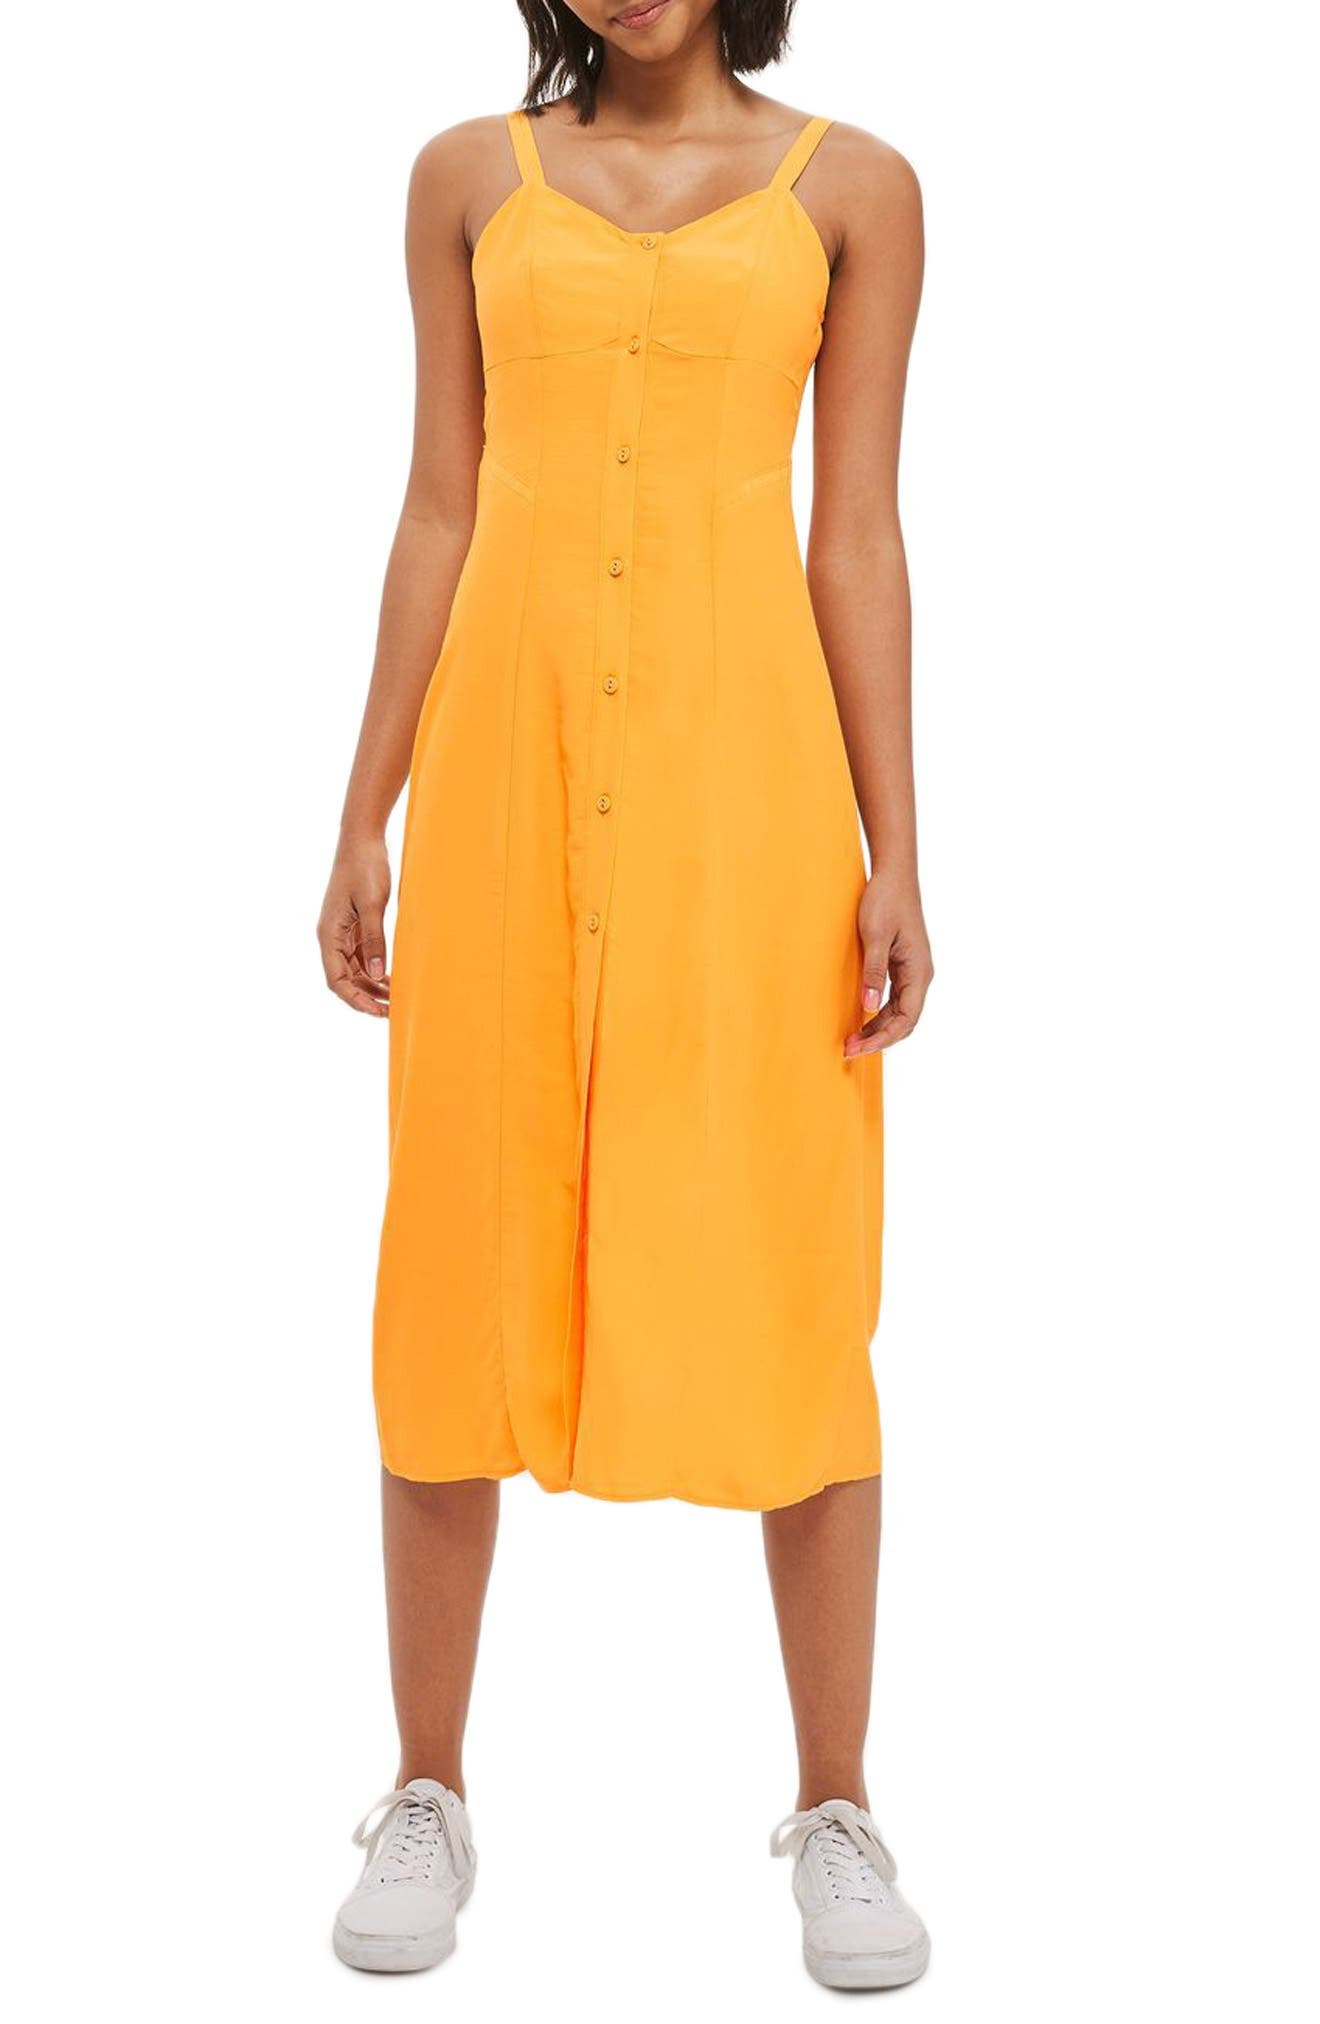 TOPSHOP Corset Button Slipdress